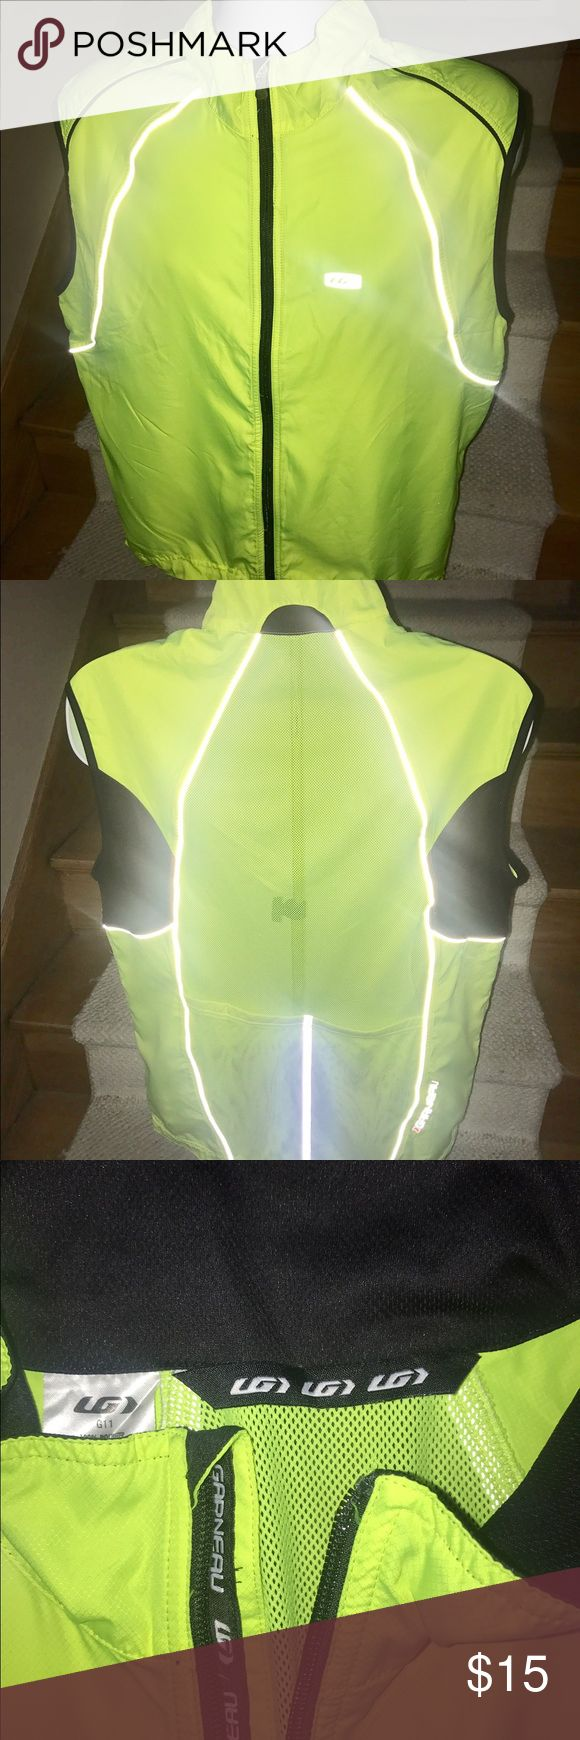 Louis Garneau bright men's cycling running vest XL Louis Garneau like new men's bright neon running cycling vest that is sized XL.  Pockets on the bottom of the back.  Reflective areas on front and back.  Great quality. Louis Garneau Jackets & Coats Vests